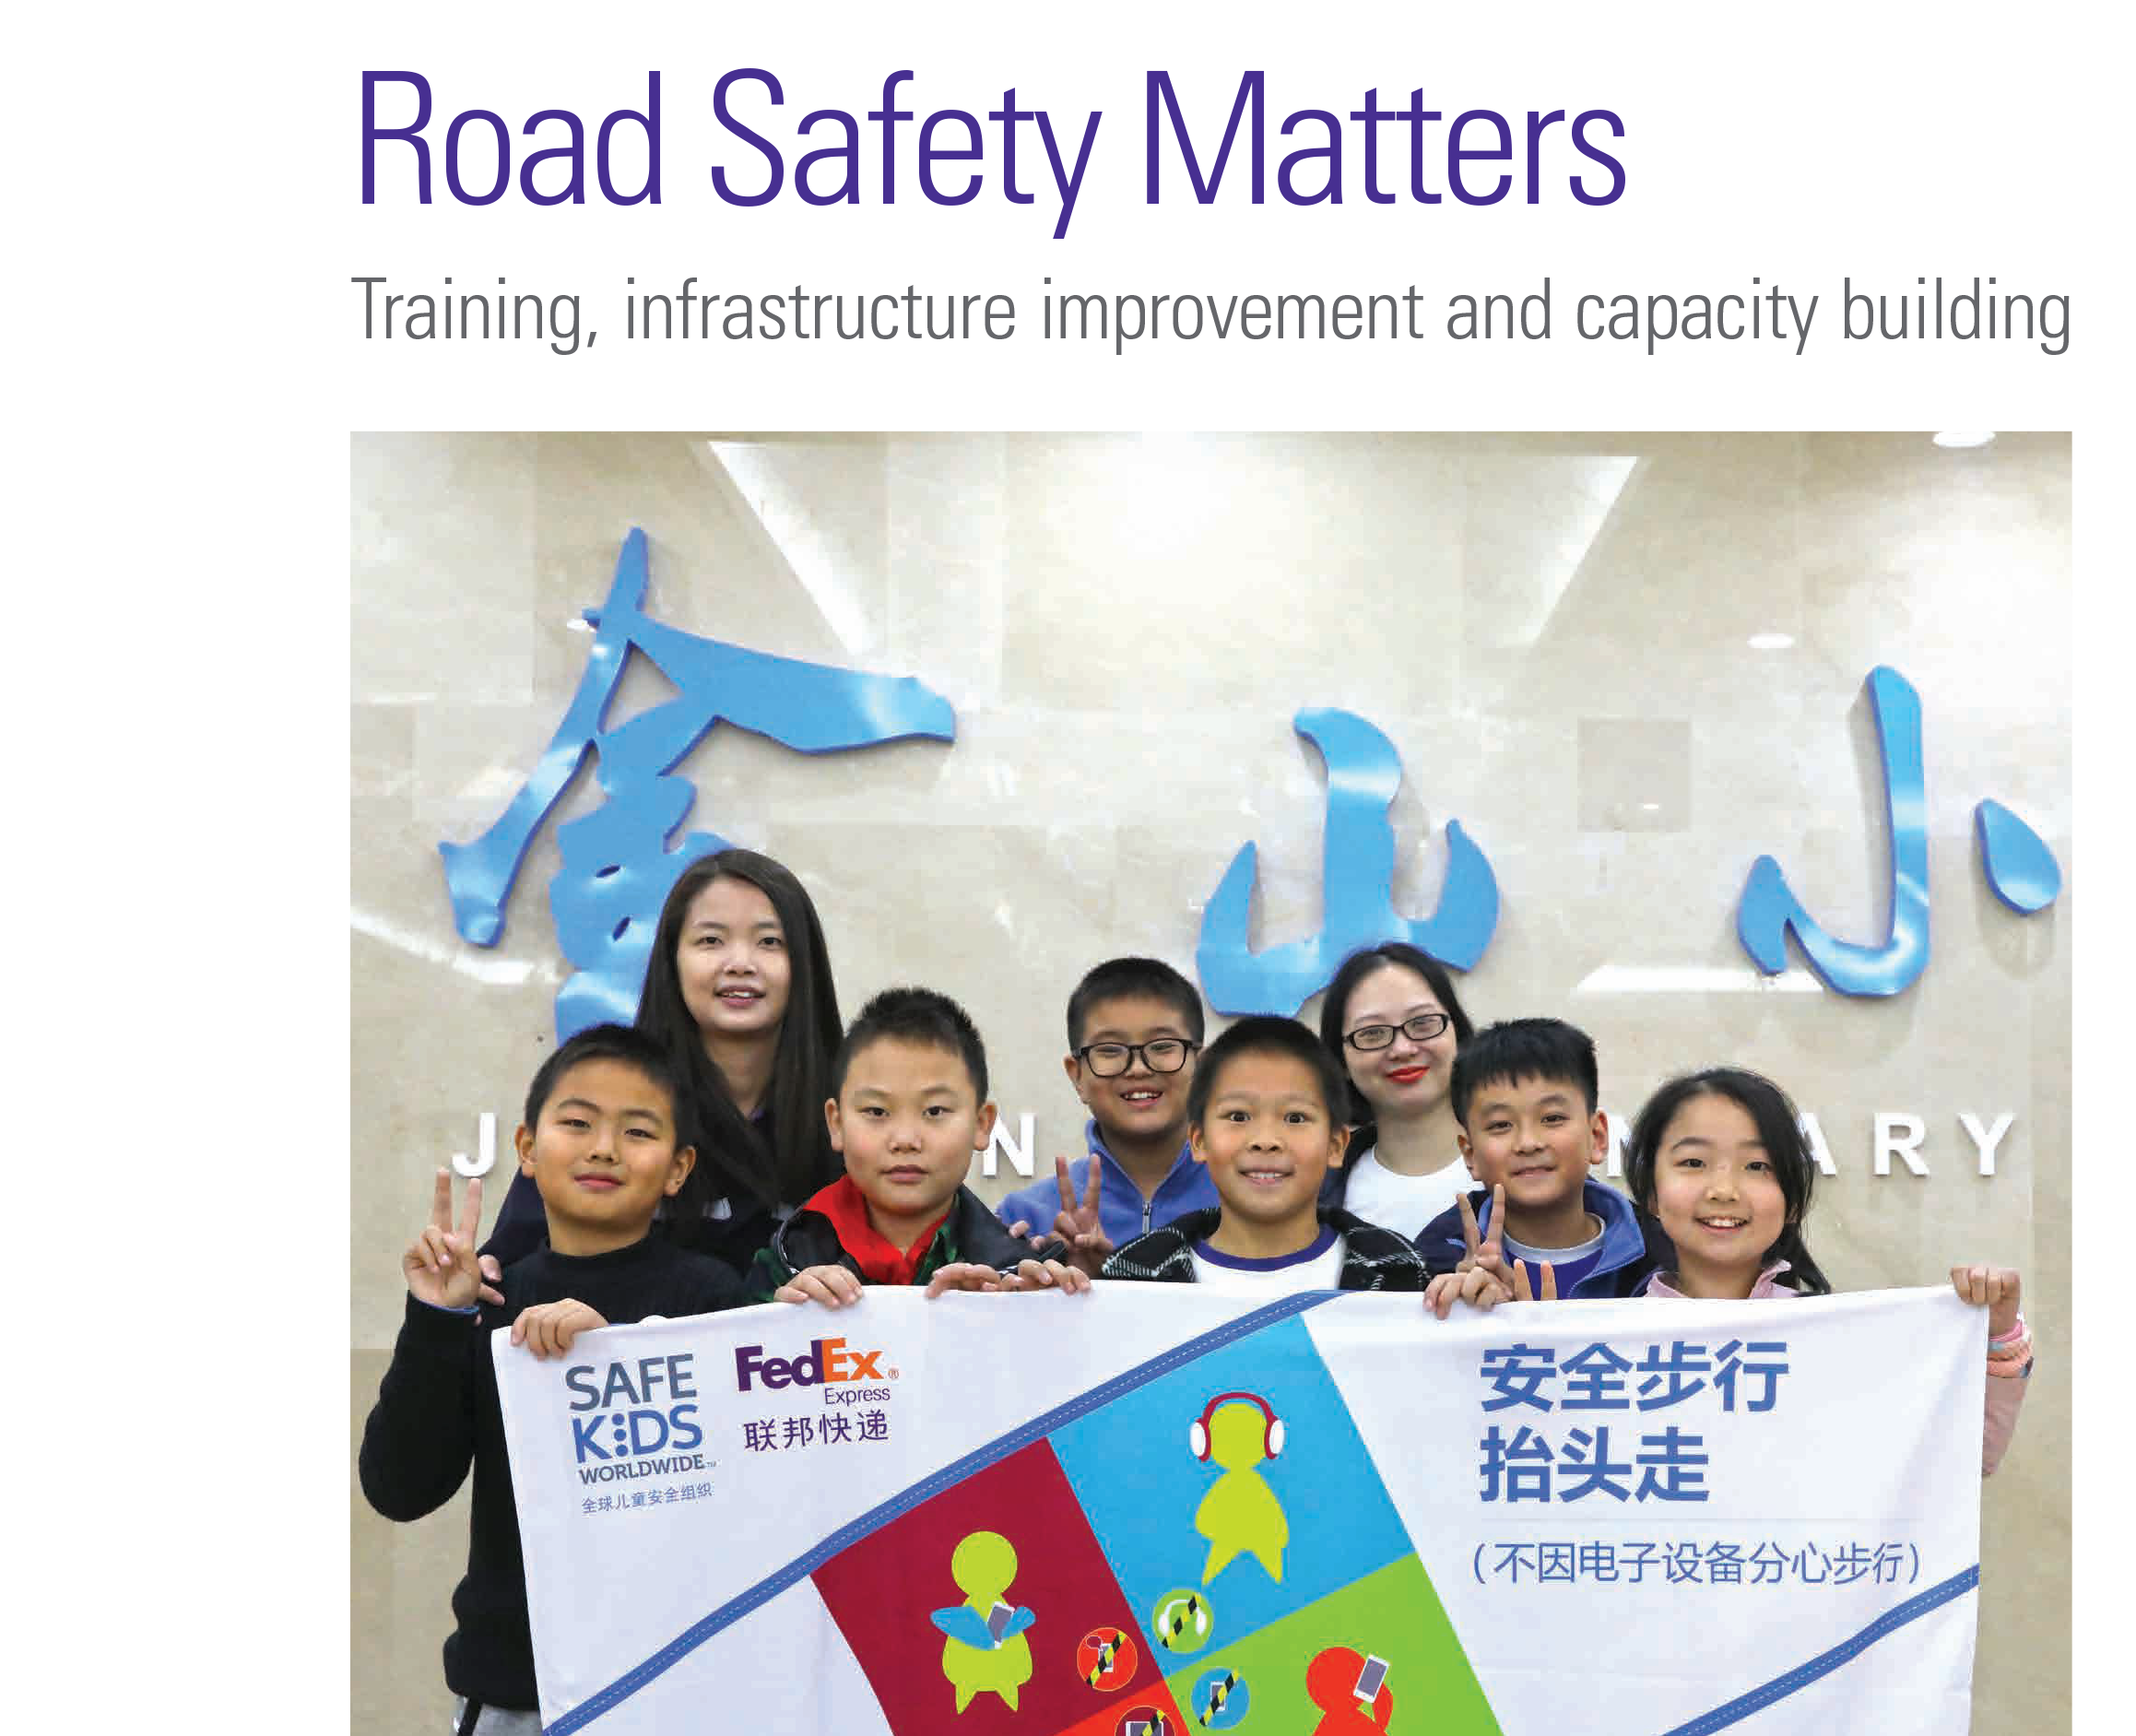 FedEx Road Safety Matters 2019 report released featuring FedEx's support of SR4S